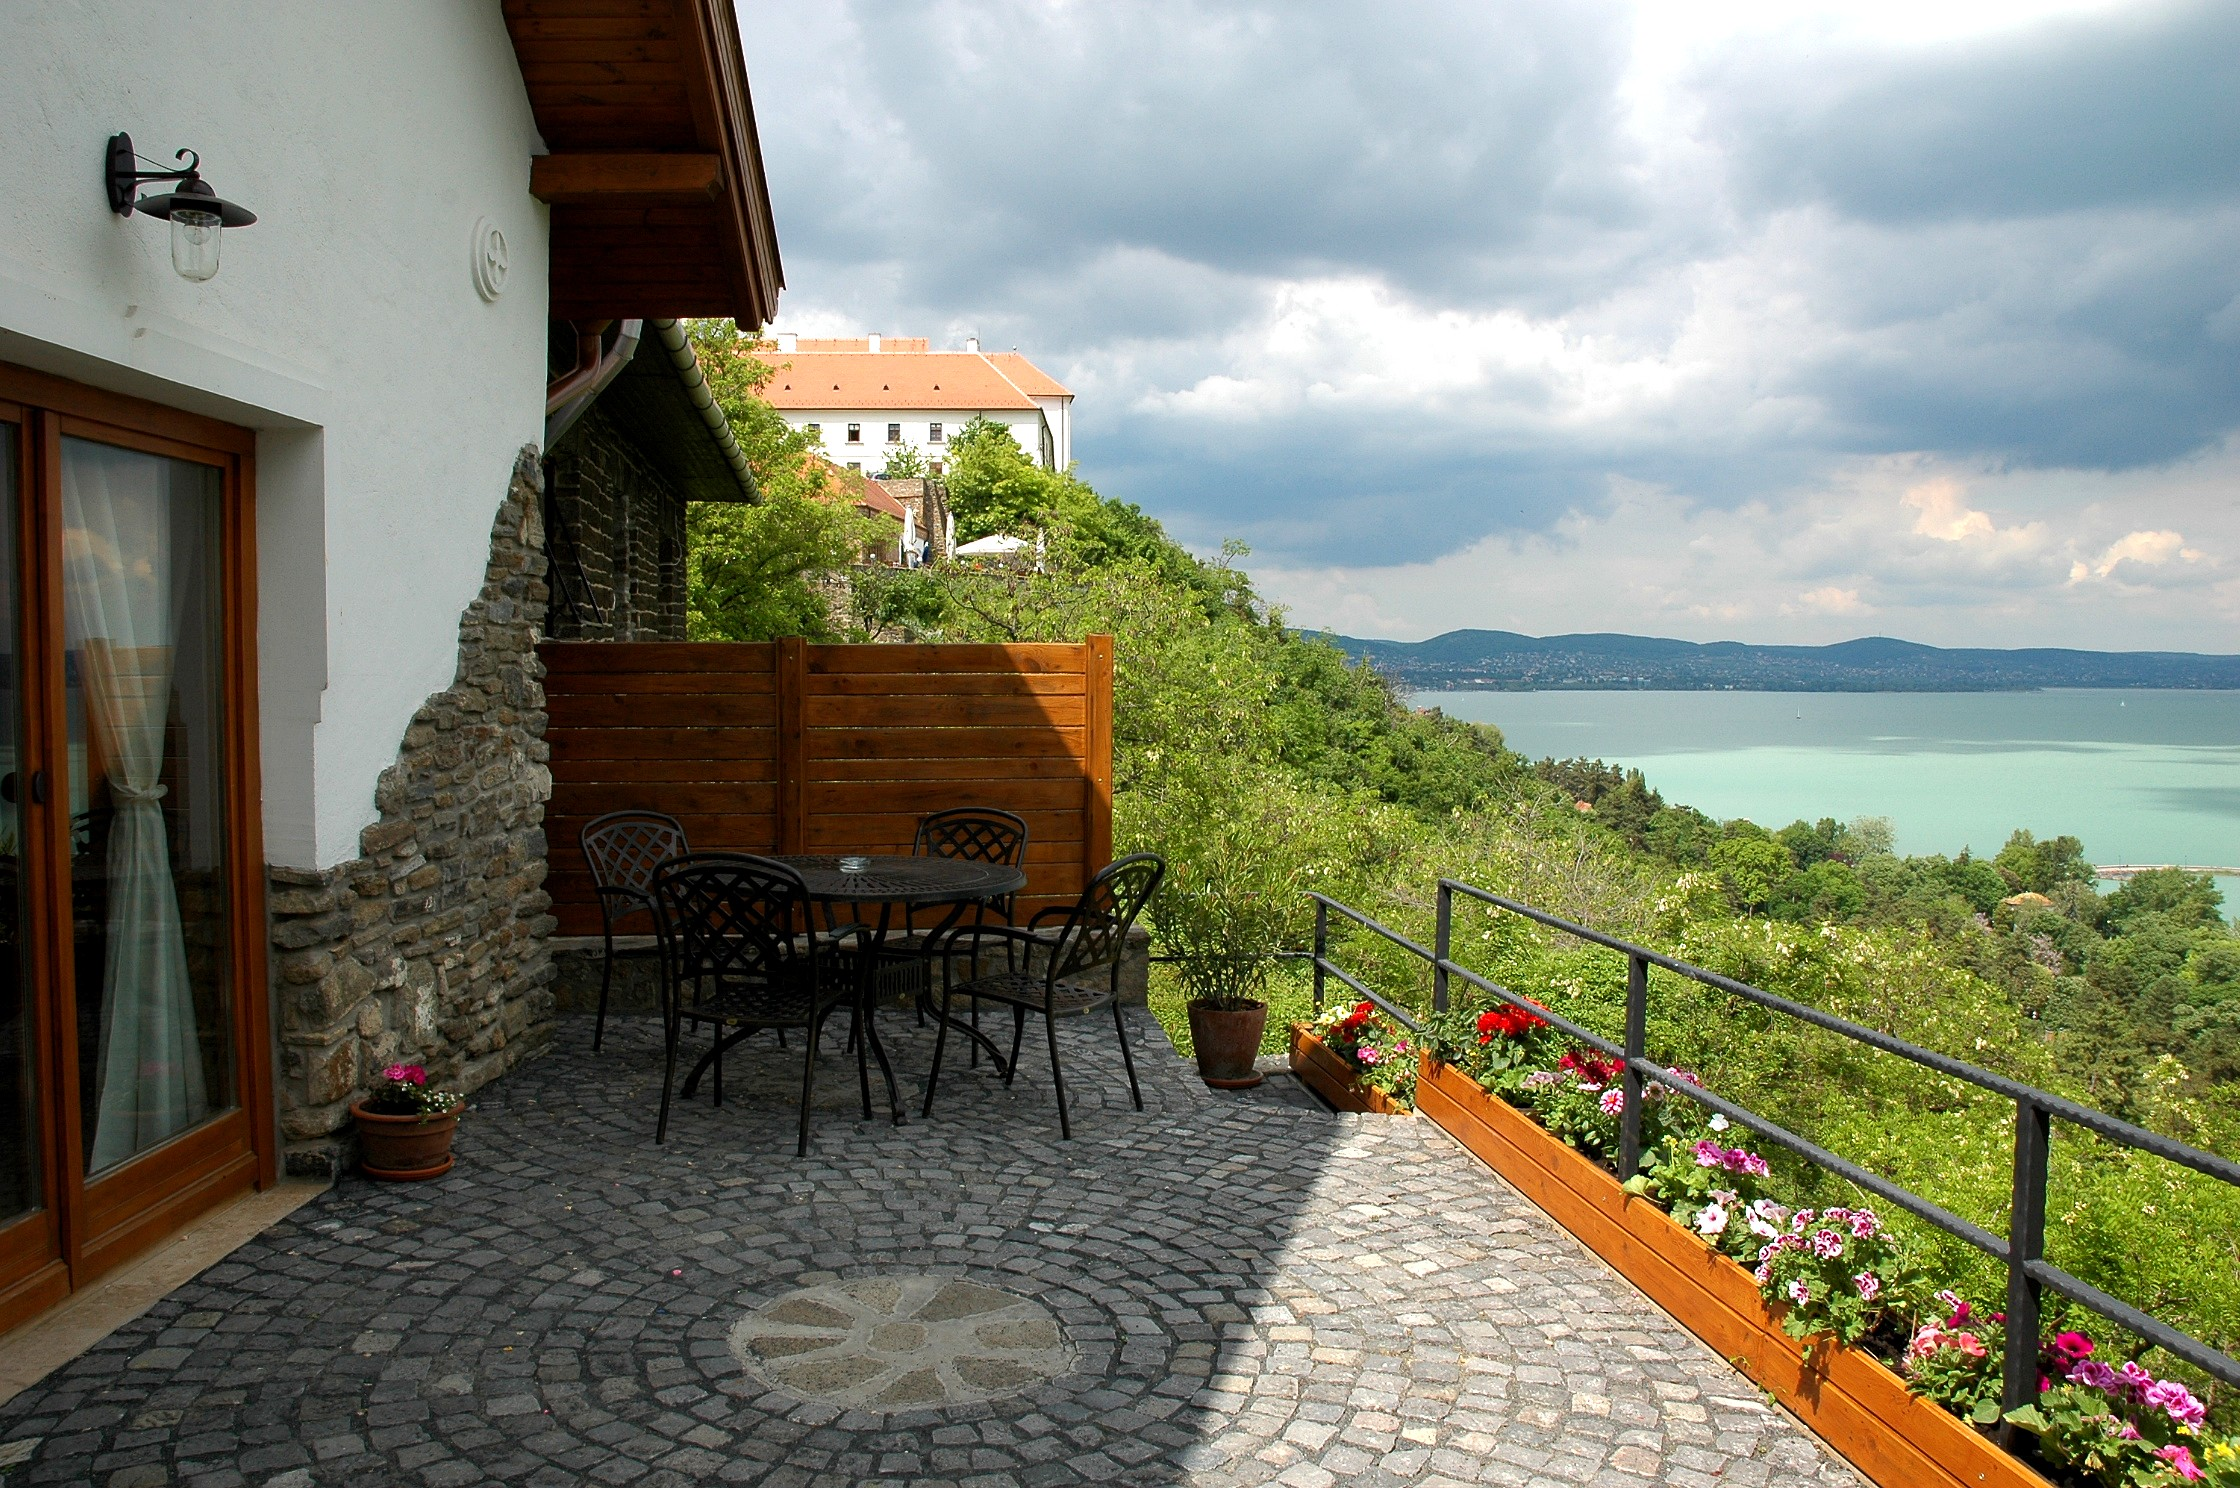 Tihany Hungary  City pictures : Tihany, Hungary: Lake Balaton's Most Alluring Village | Field Notes ...